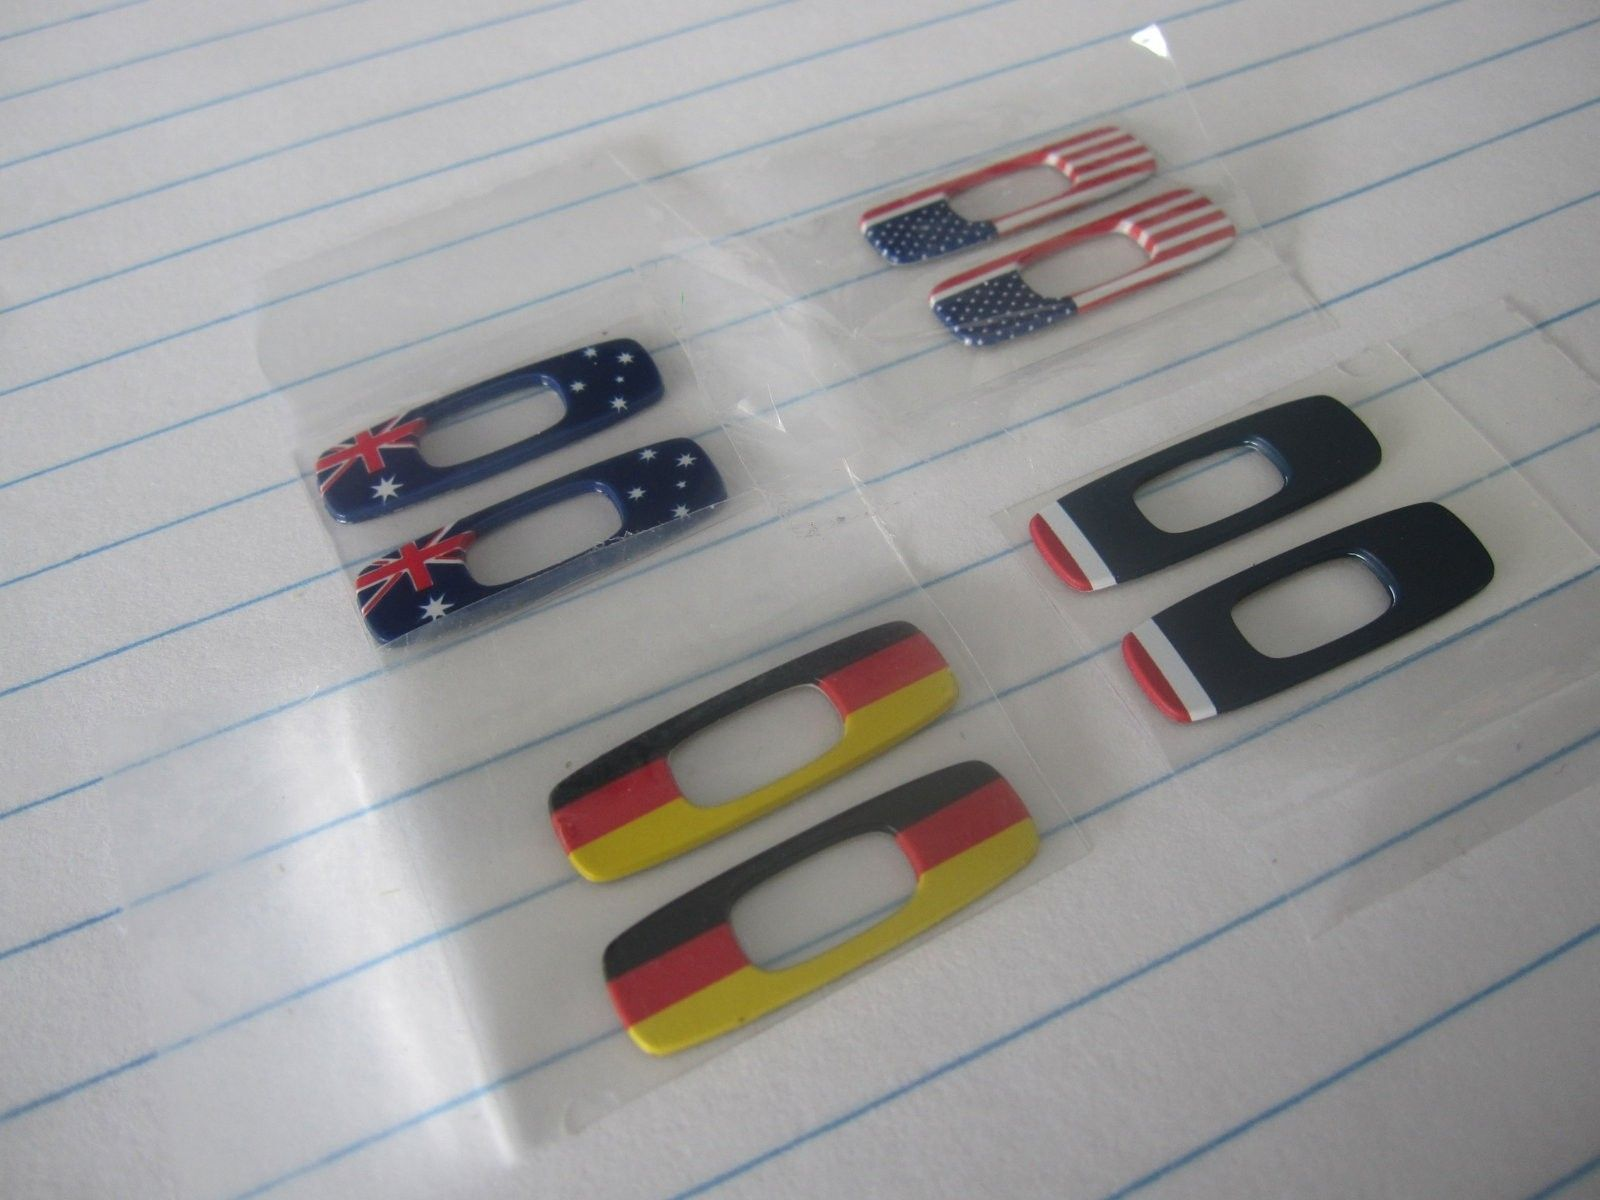 4 New Sets of Fuel Cell country flag Icons - IMG_4943.JPG